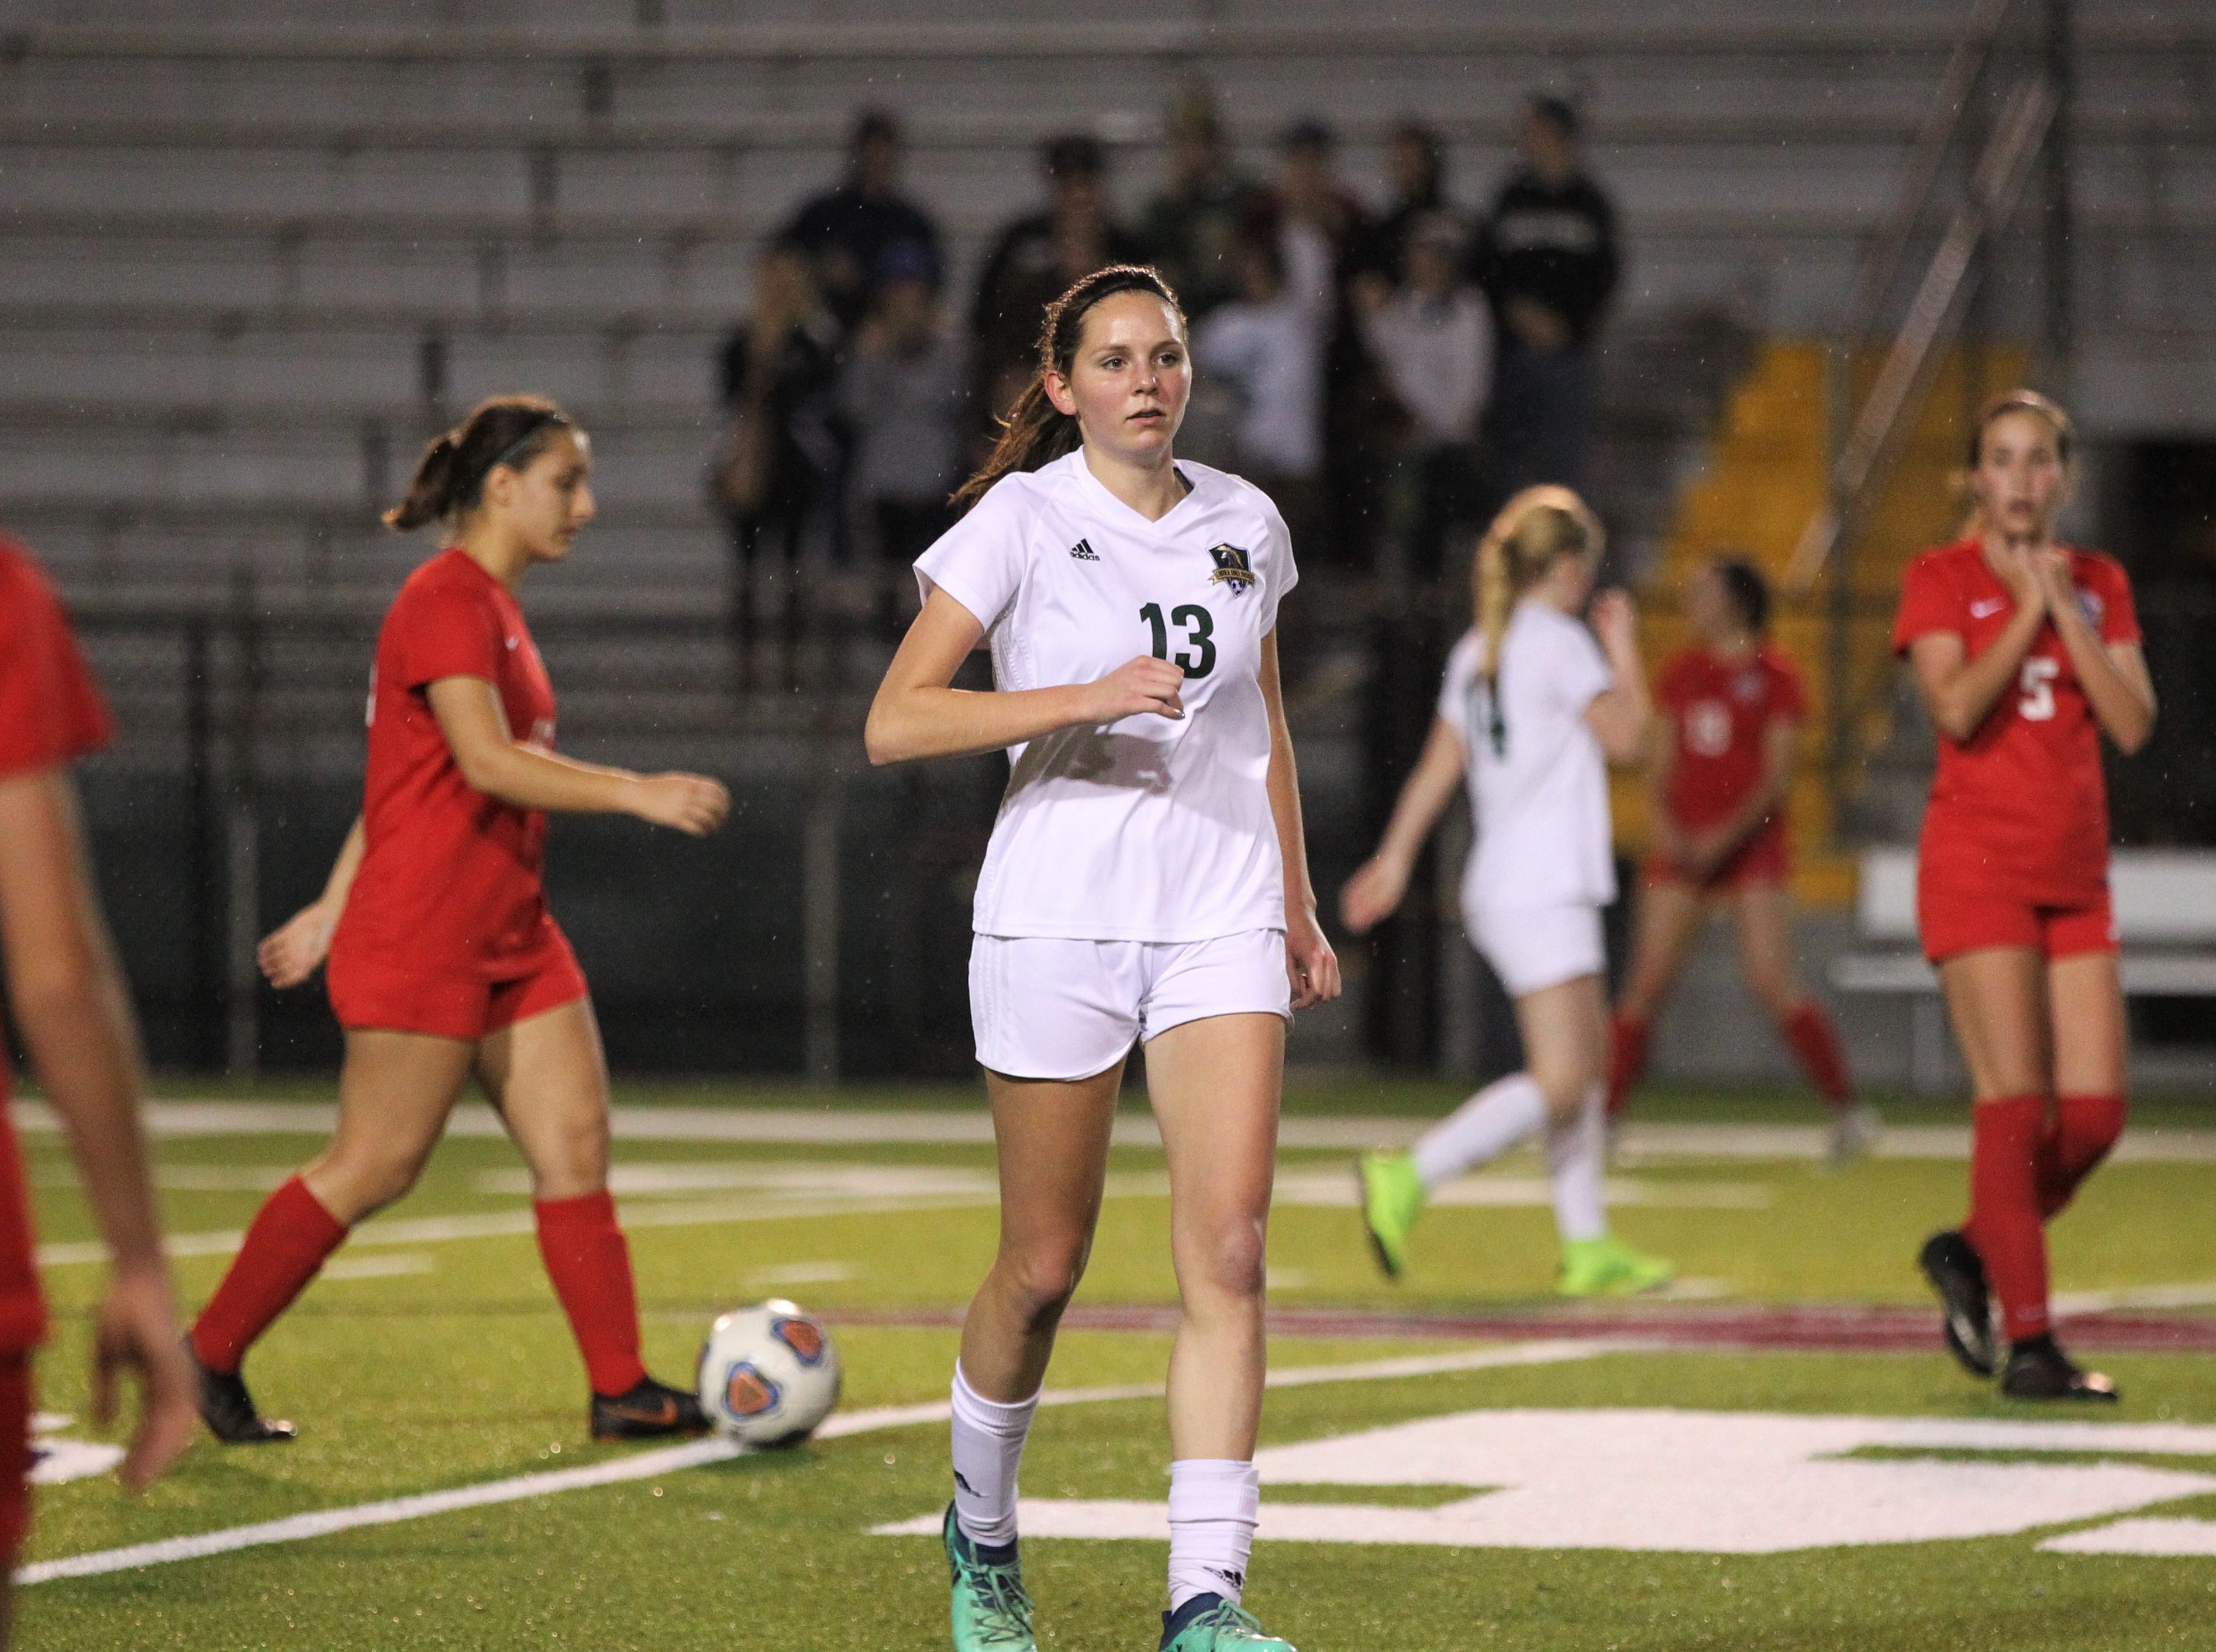 Lincoln sophomore forward Olivia Rehwinkel was credited with a first-half goal, but Leon's girls soccer team rallied to beat Lincoln 2-1 in the District 2-4A championship on Feb. 1, 2019.